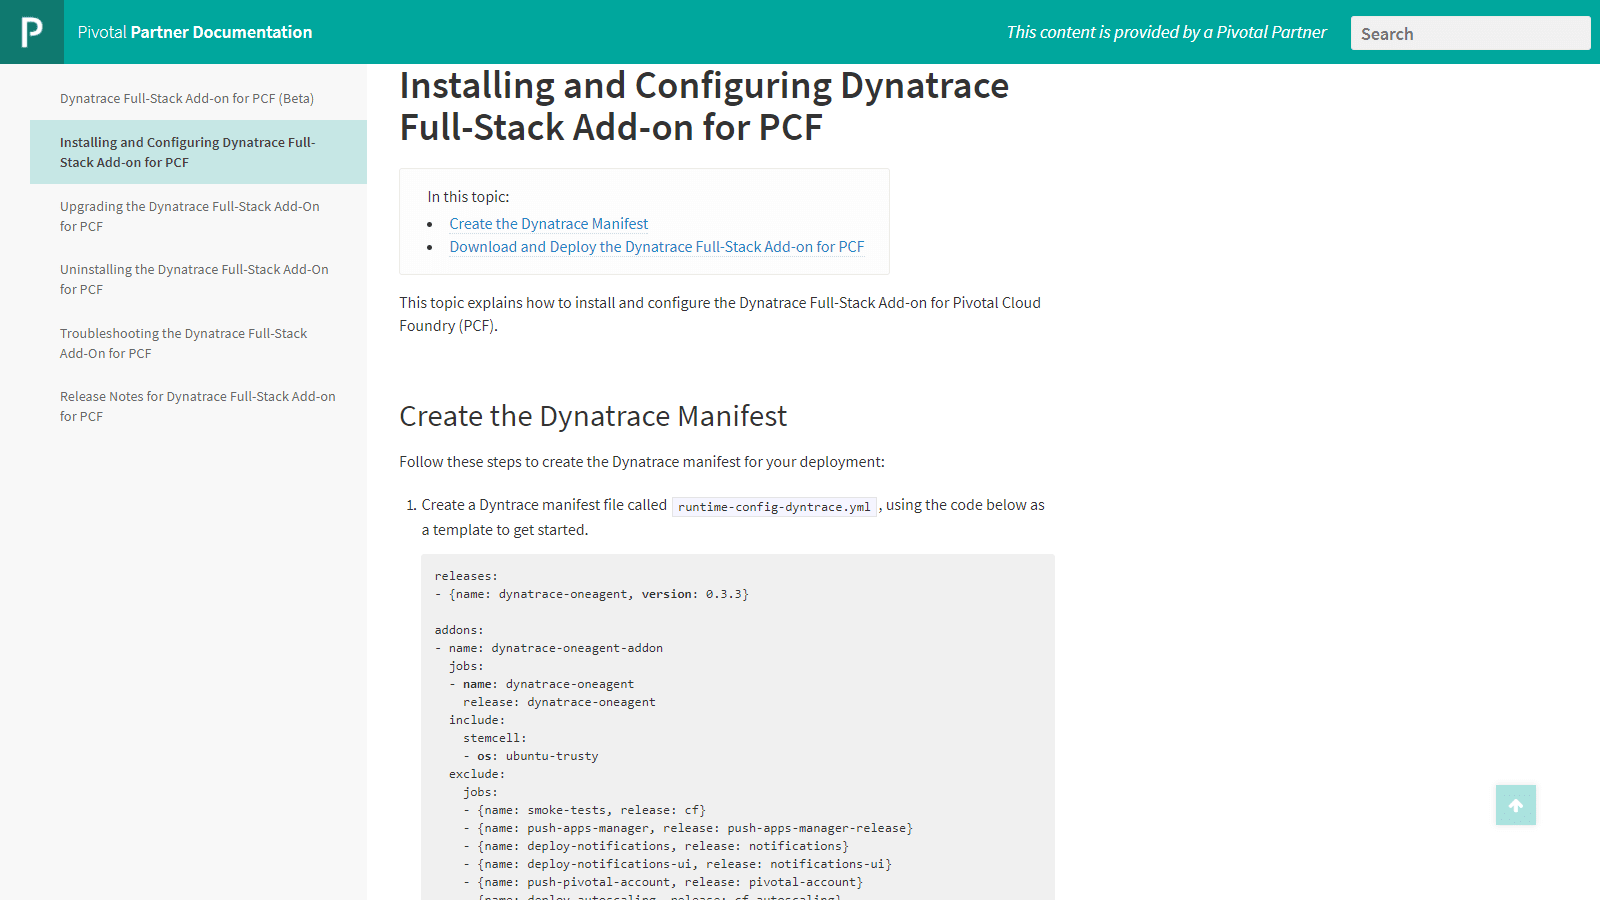 Configure and Install the Dynatrace Full Stack Add-on for PFC